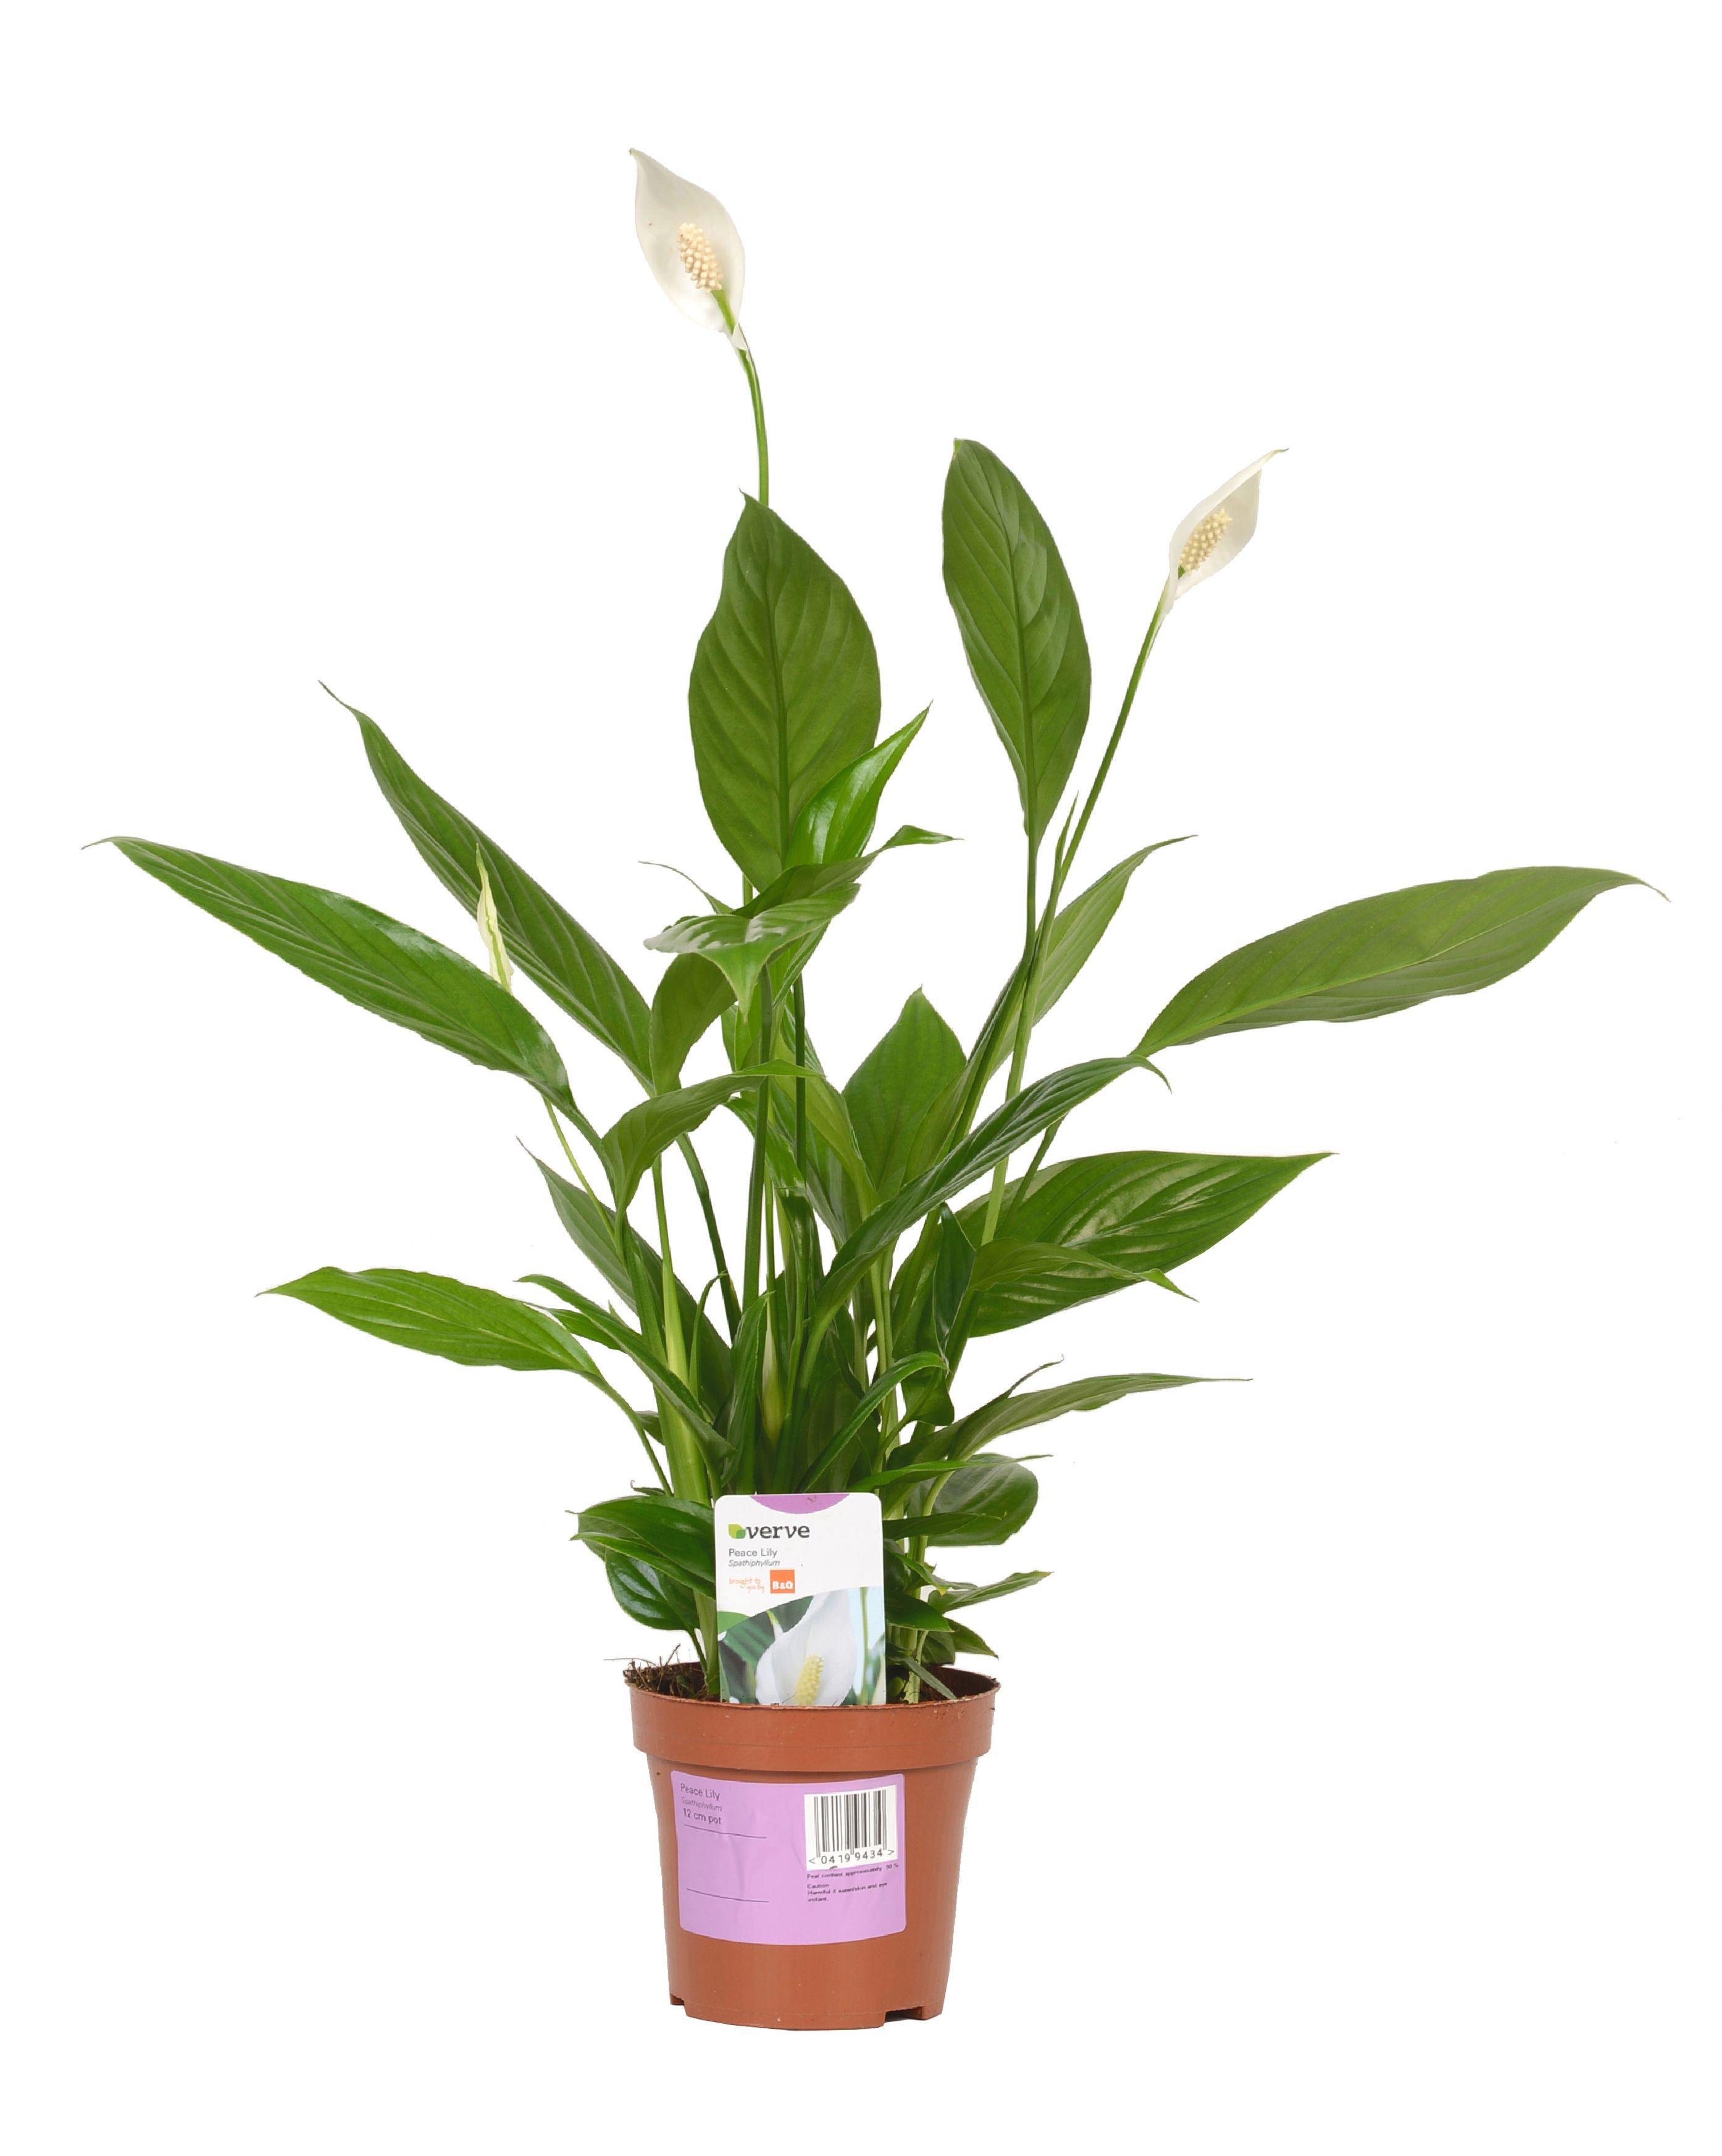 Verve Peace Lily In Plastic Pot Departments Diy At B Amp Q